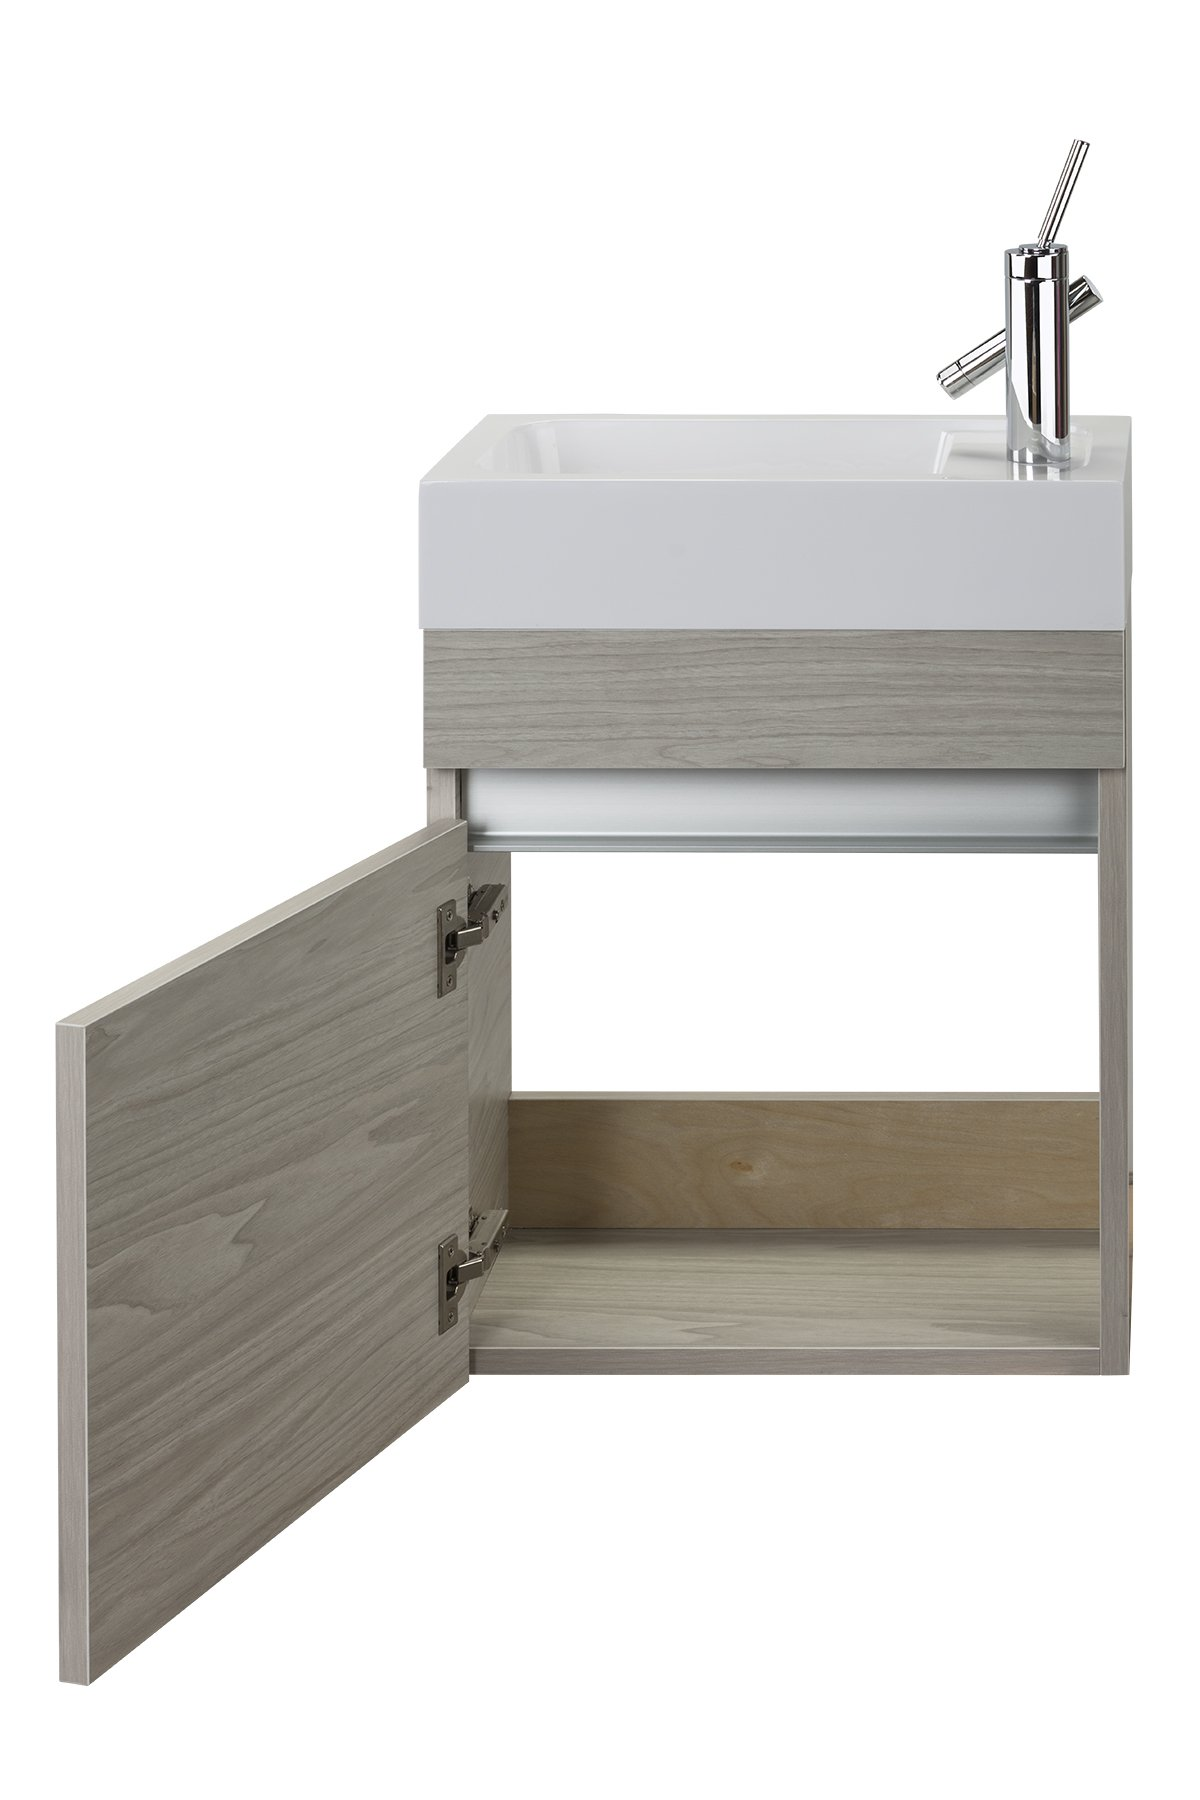 Cutler Kitchen & Bath FVPICCWKND18 Sangallo 18 in. Space Saver Bathroom Vanity, 18 inch, White - Includes cabinet Select from available finishes Wood construction - bathroom-vanities, bathroom-fixtures-hardware, bathroom - 71bCM47eCLL -